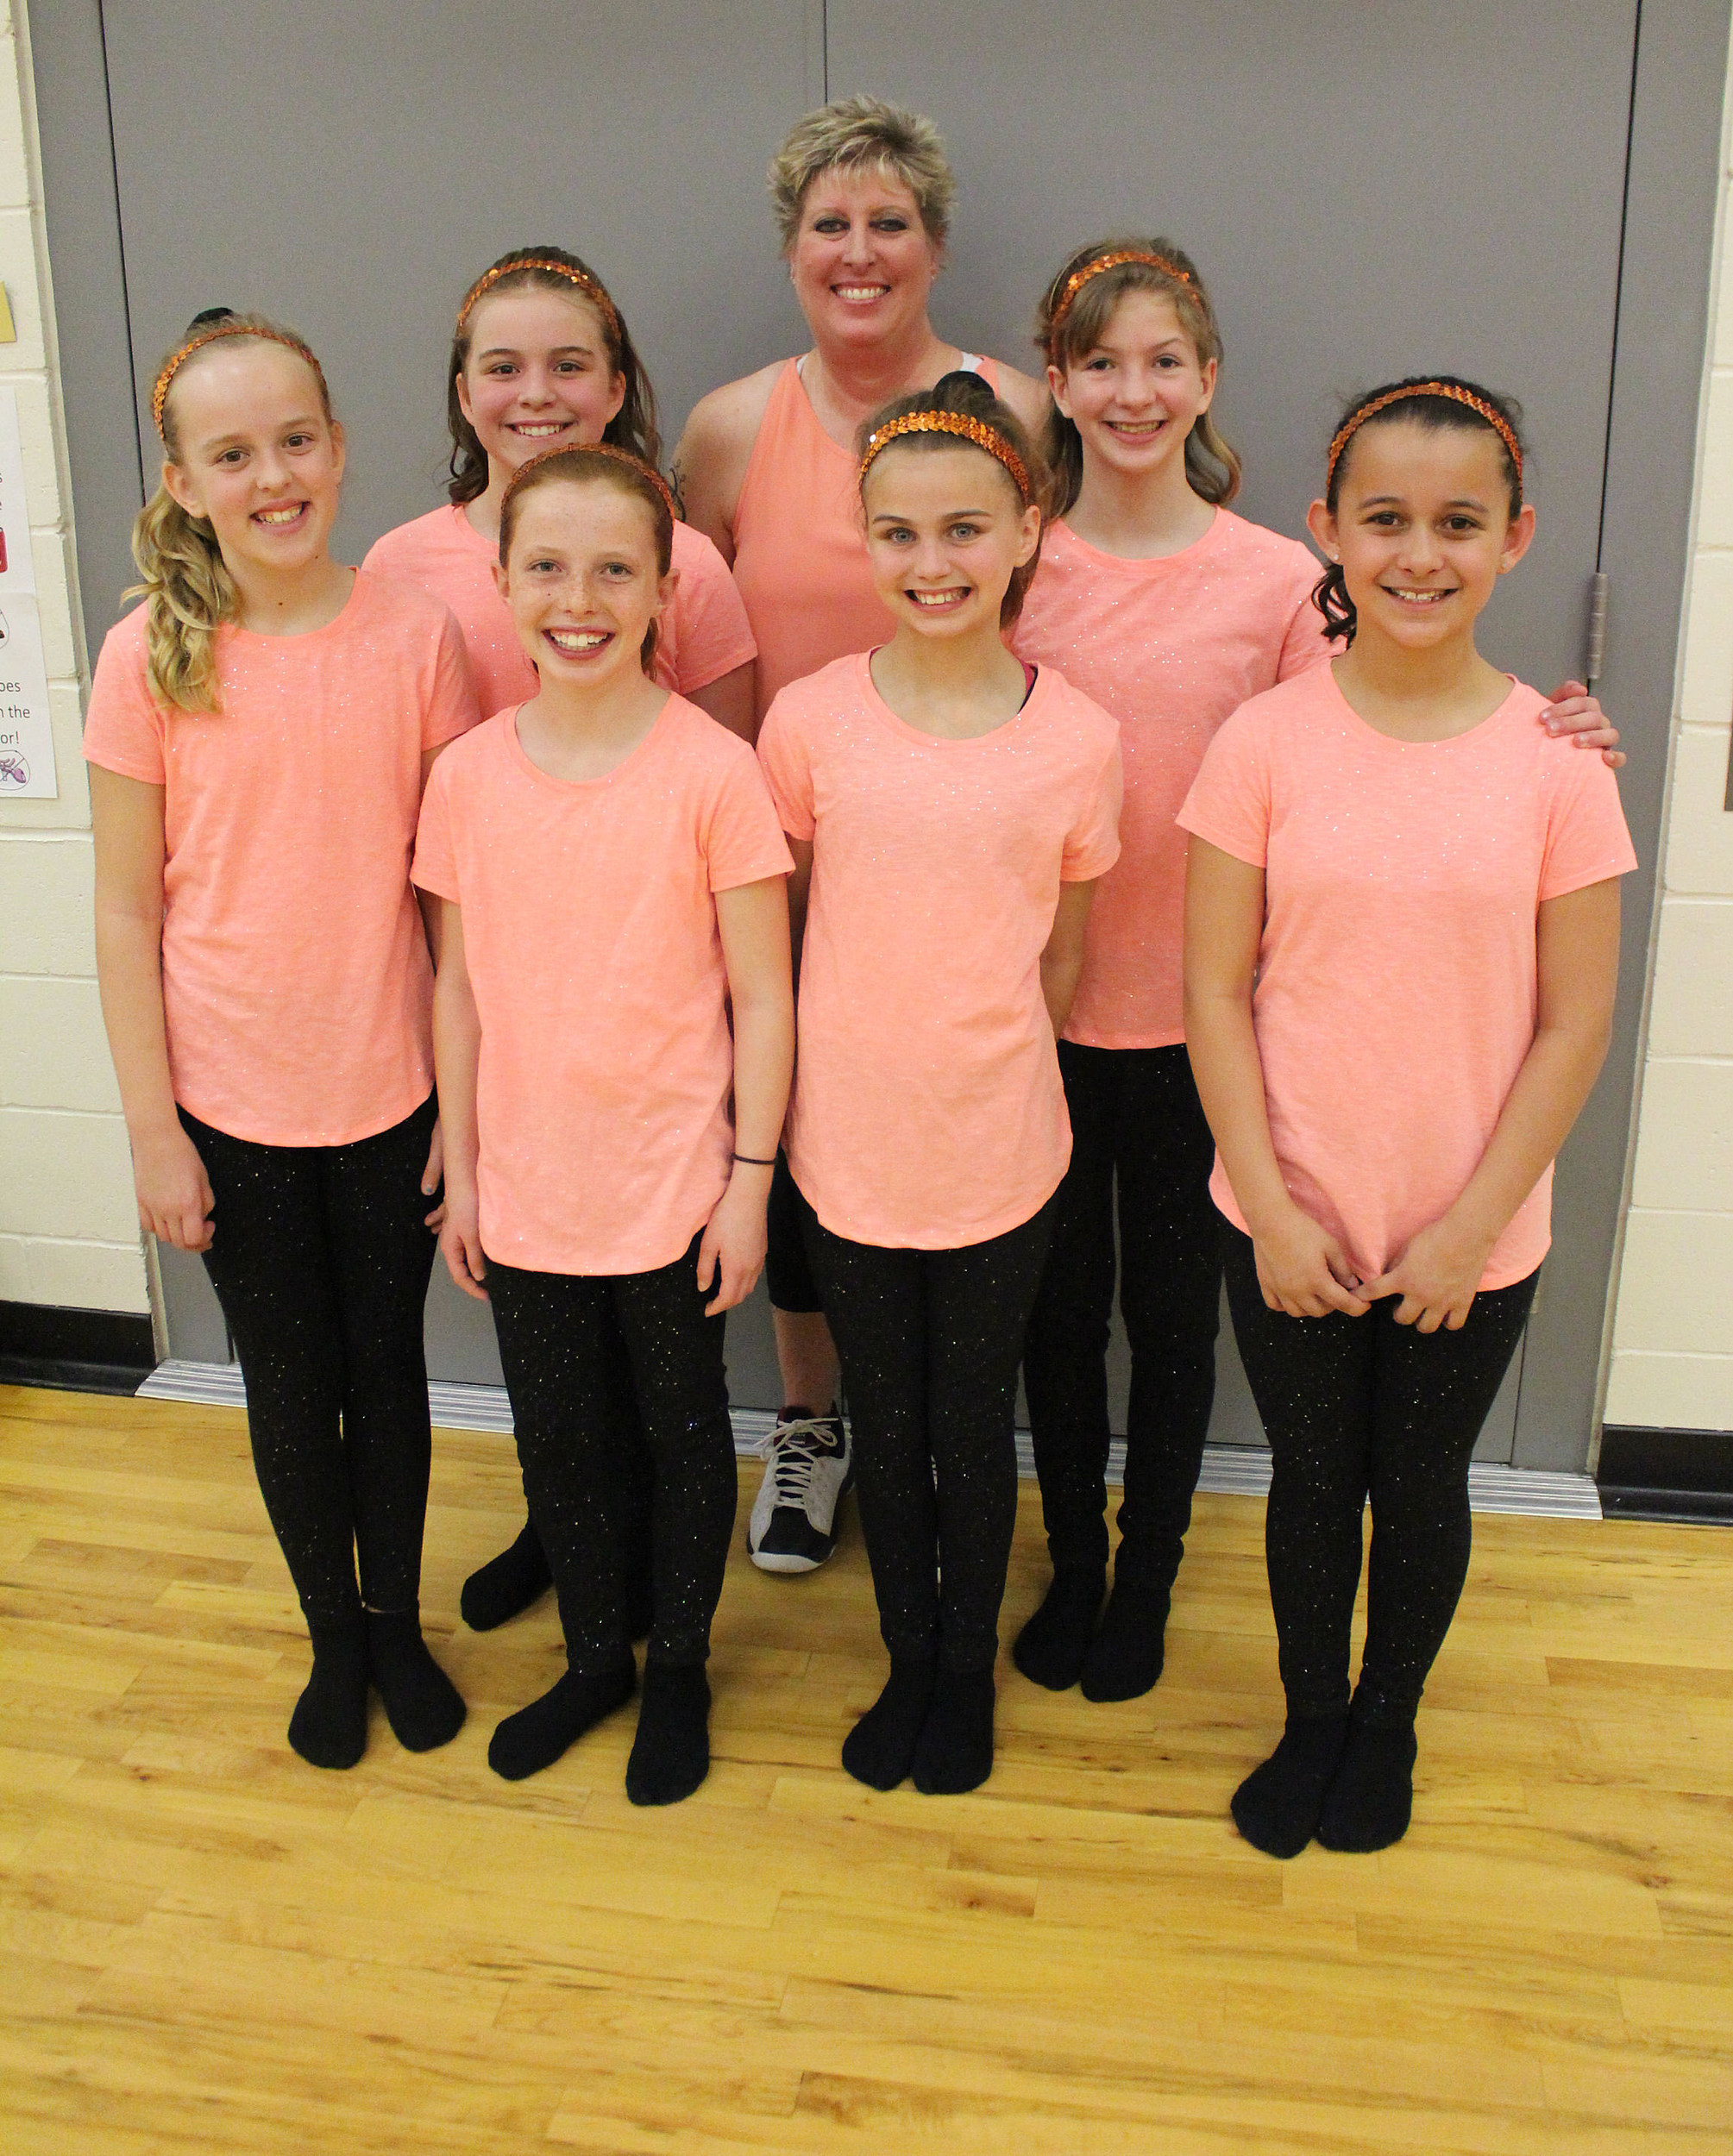 Darla Petersen, physical ed teacher at Sawtooth Elementary School, poses for a photo with students who competed in a dance competition for Fuel Up to Play 60. Petersen and the girls came up with the dance the routine and shared it on YouTube. (Photo by Andrew Weeks)